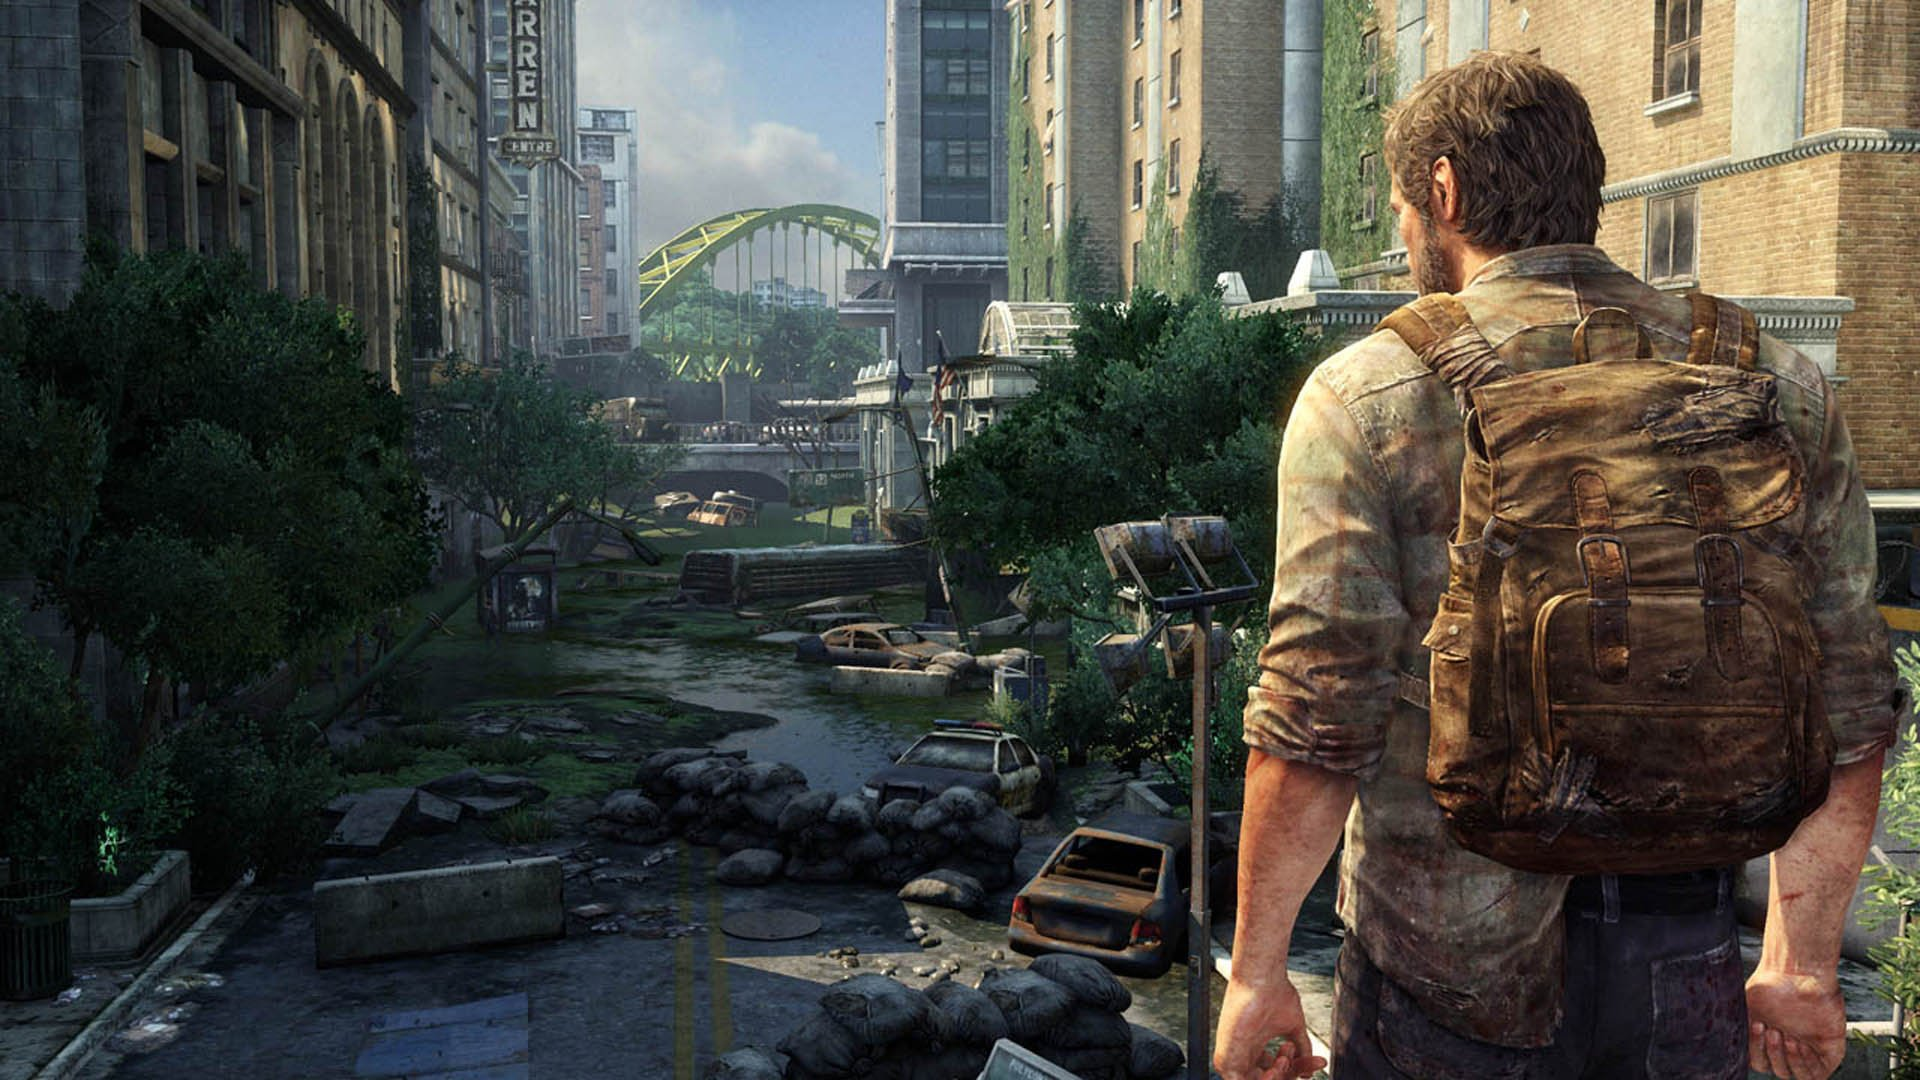 The Last of Us offers post-apocalyptic scenery similar to modern day Pripyat.